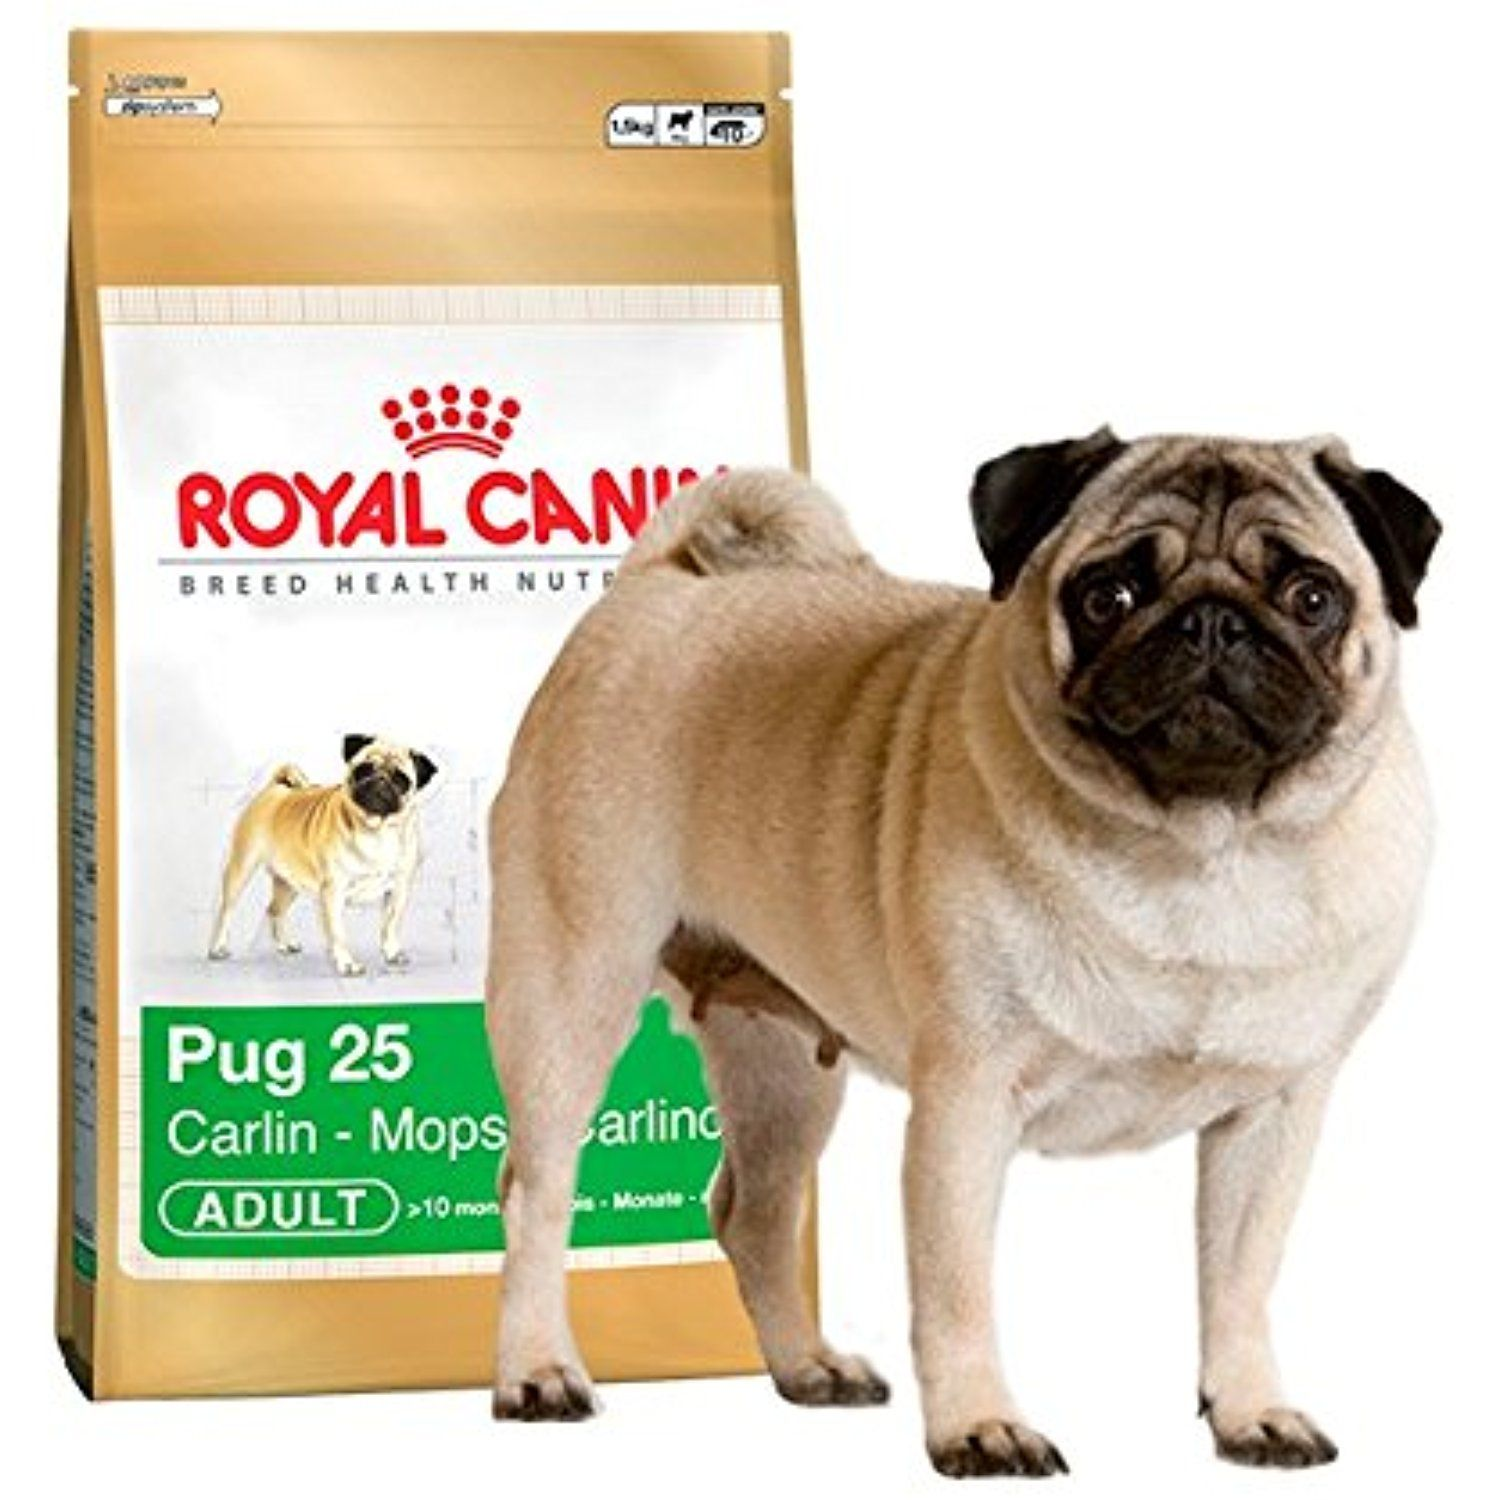 Royal Canin Pug Complete Adult Dry Dog Food 1 5kg You Can Check